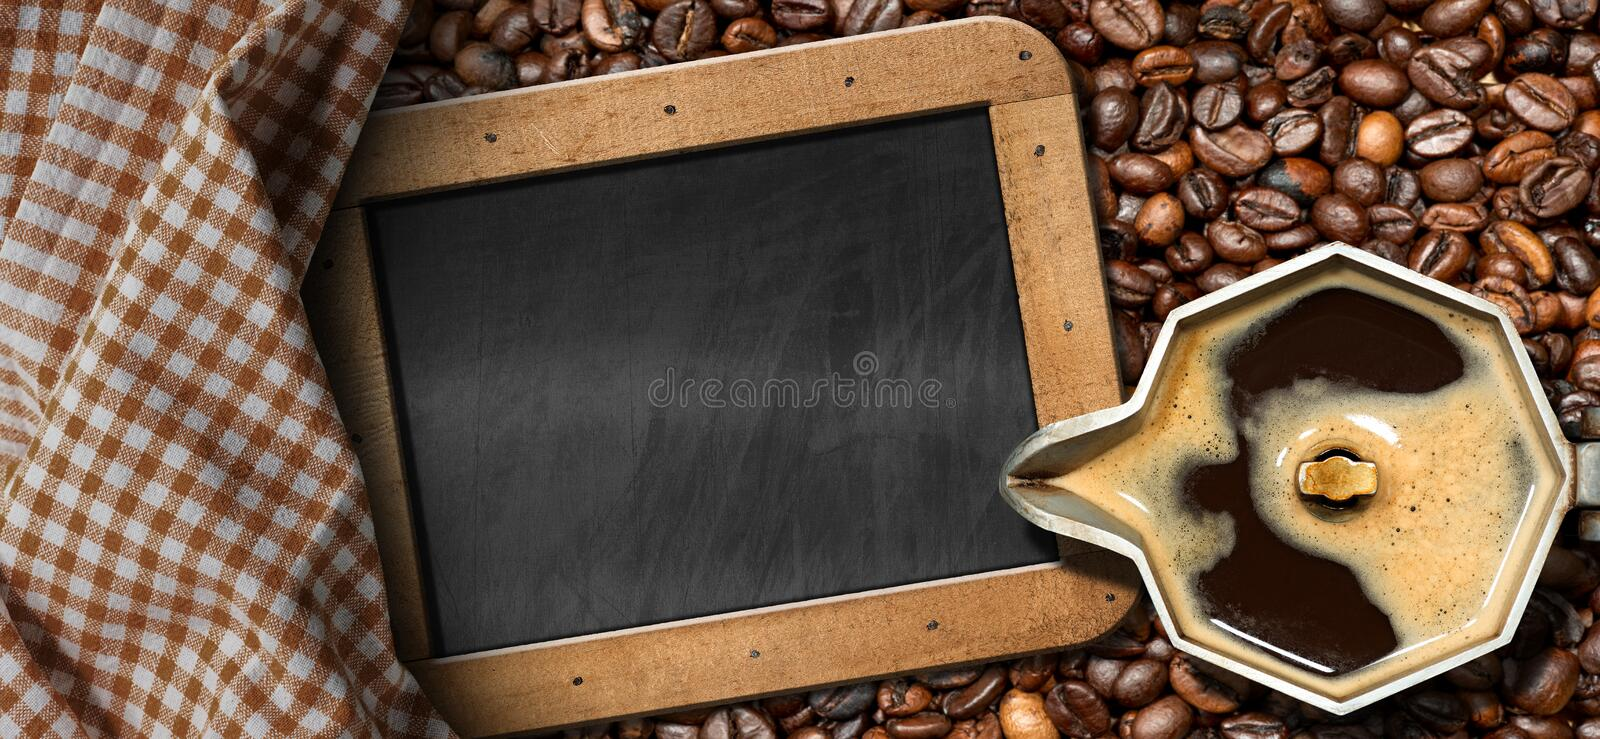 Italian Coffee Maker with Coffee Beans. Old italian coffee maker moka pot - top view with roasted coffee beans on the background and an empty blackboard with royalty free stock image